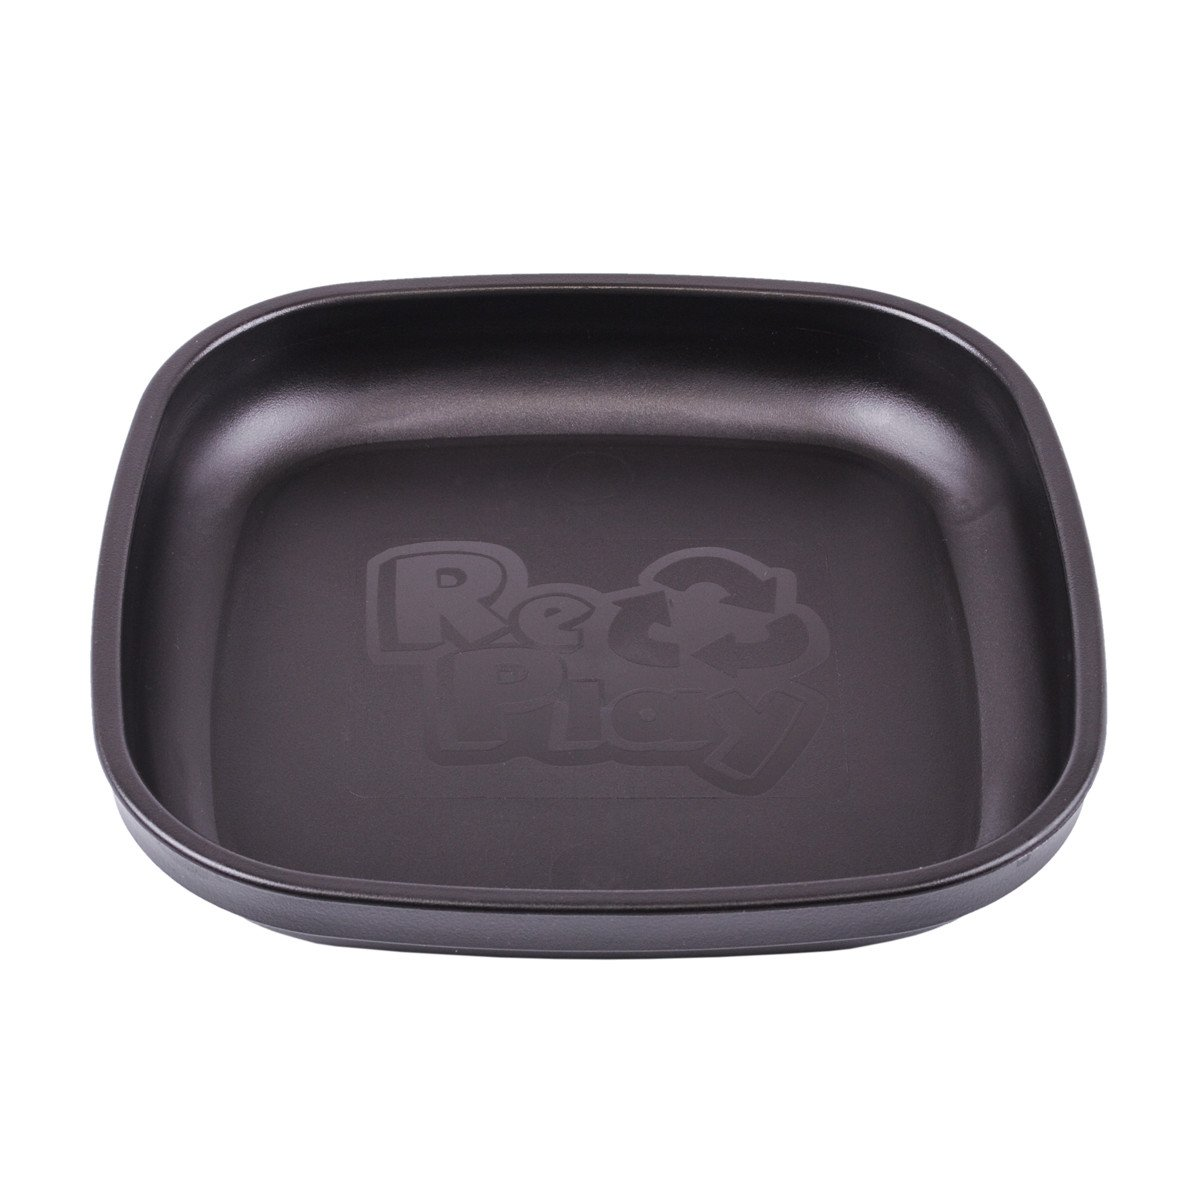 Replay Plate Replay Dinnerware Black at Little Earth Nest Eco Shop